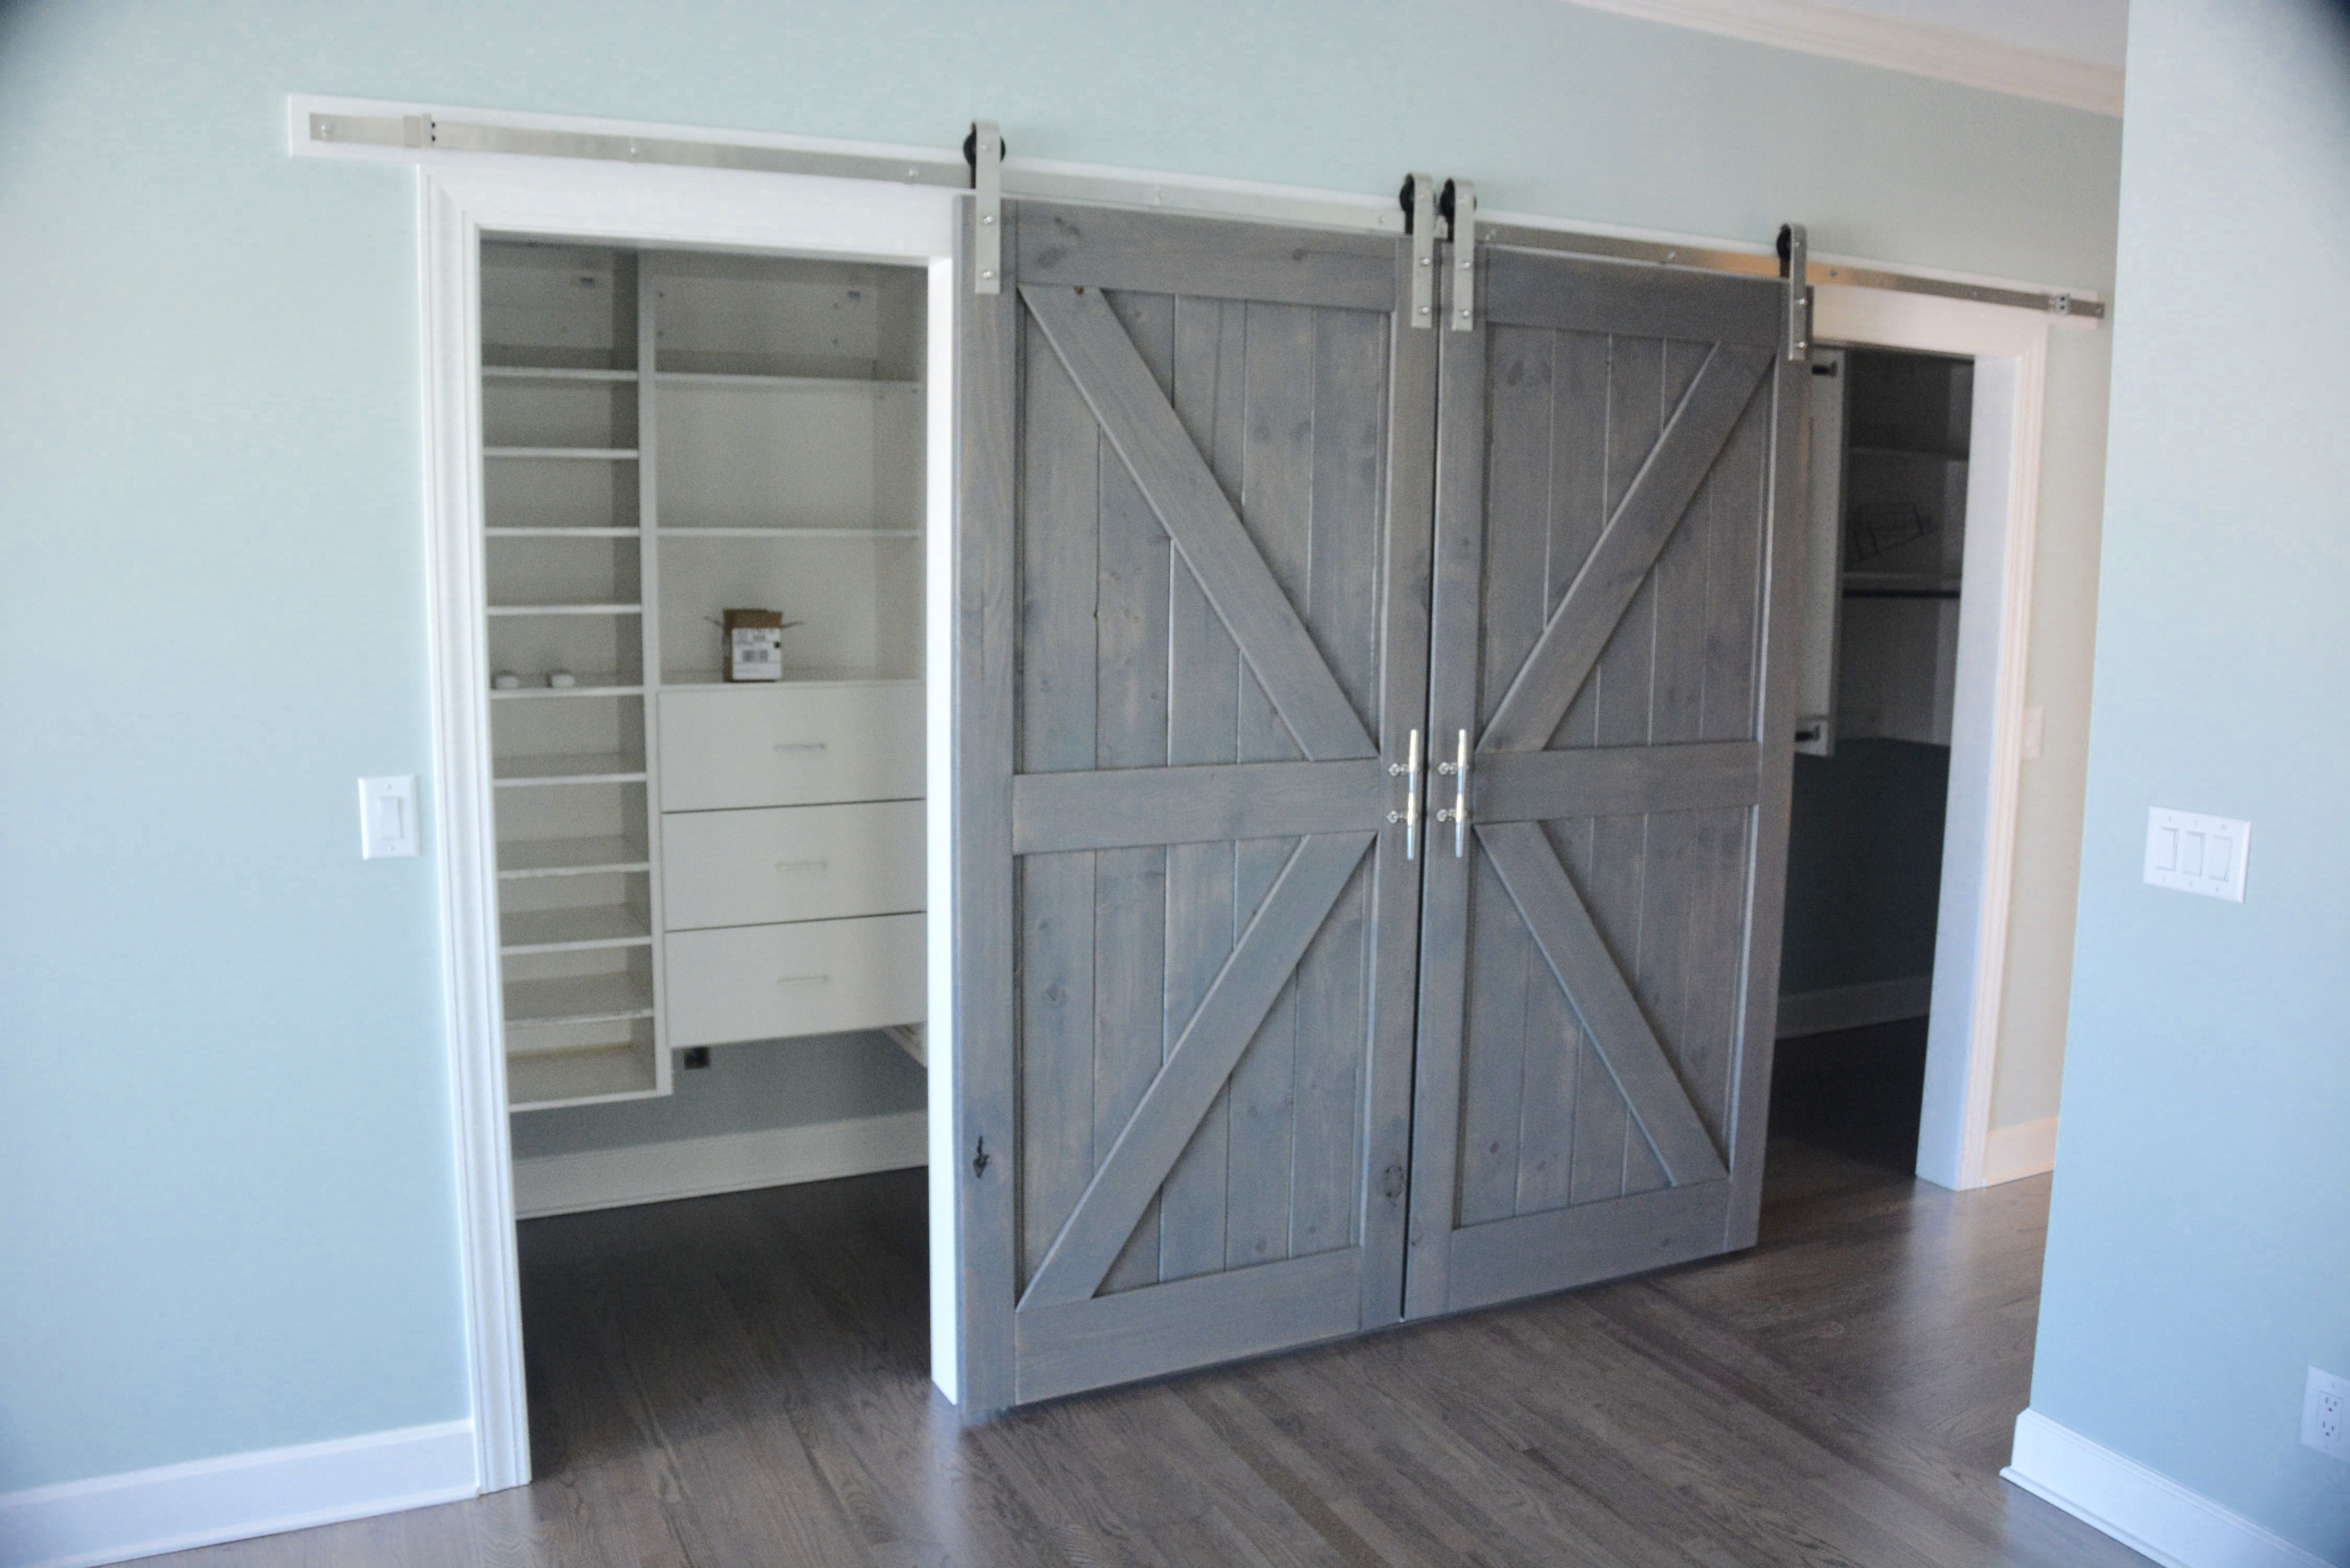 British Brace Sliding Barn Doors With Grey Stain The Hardware Was